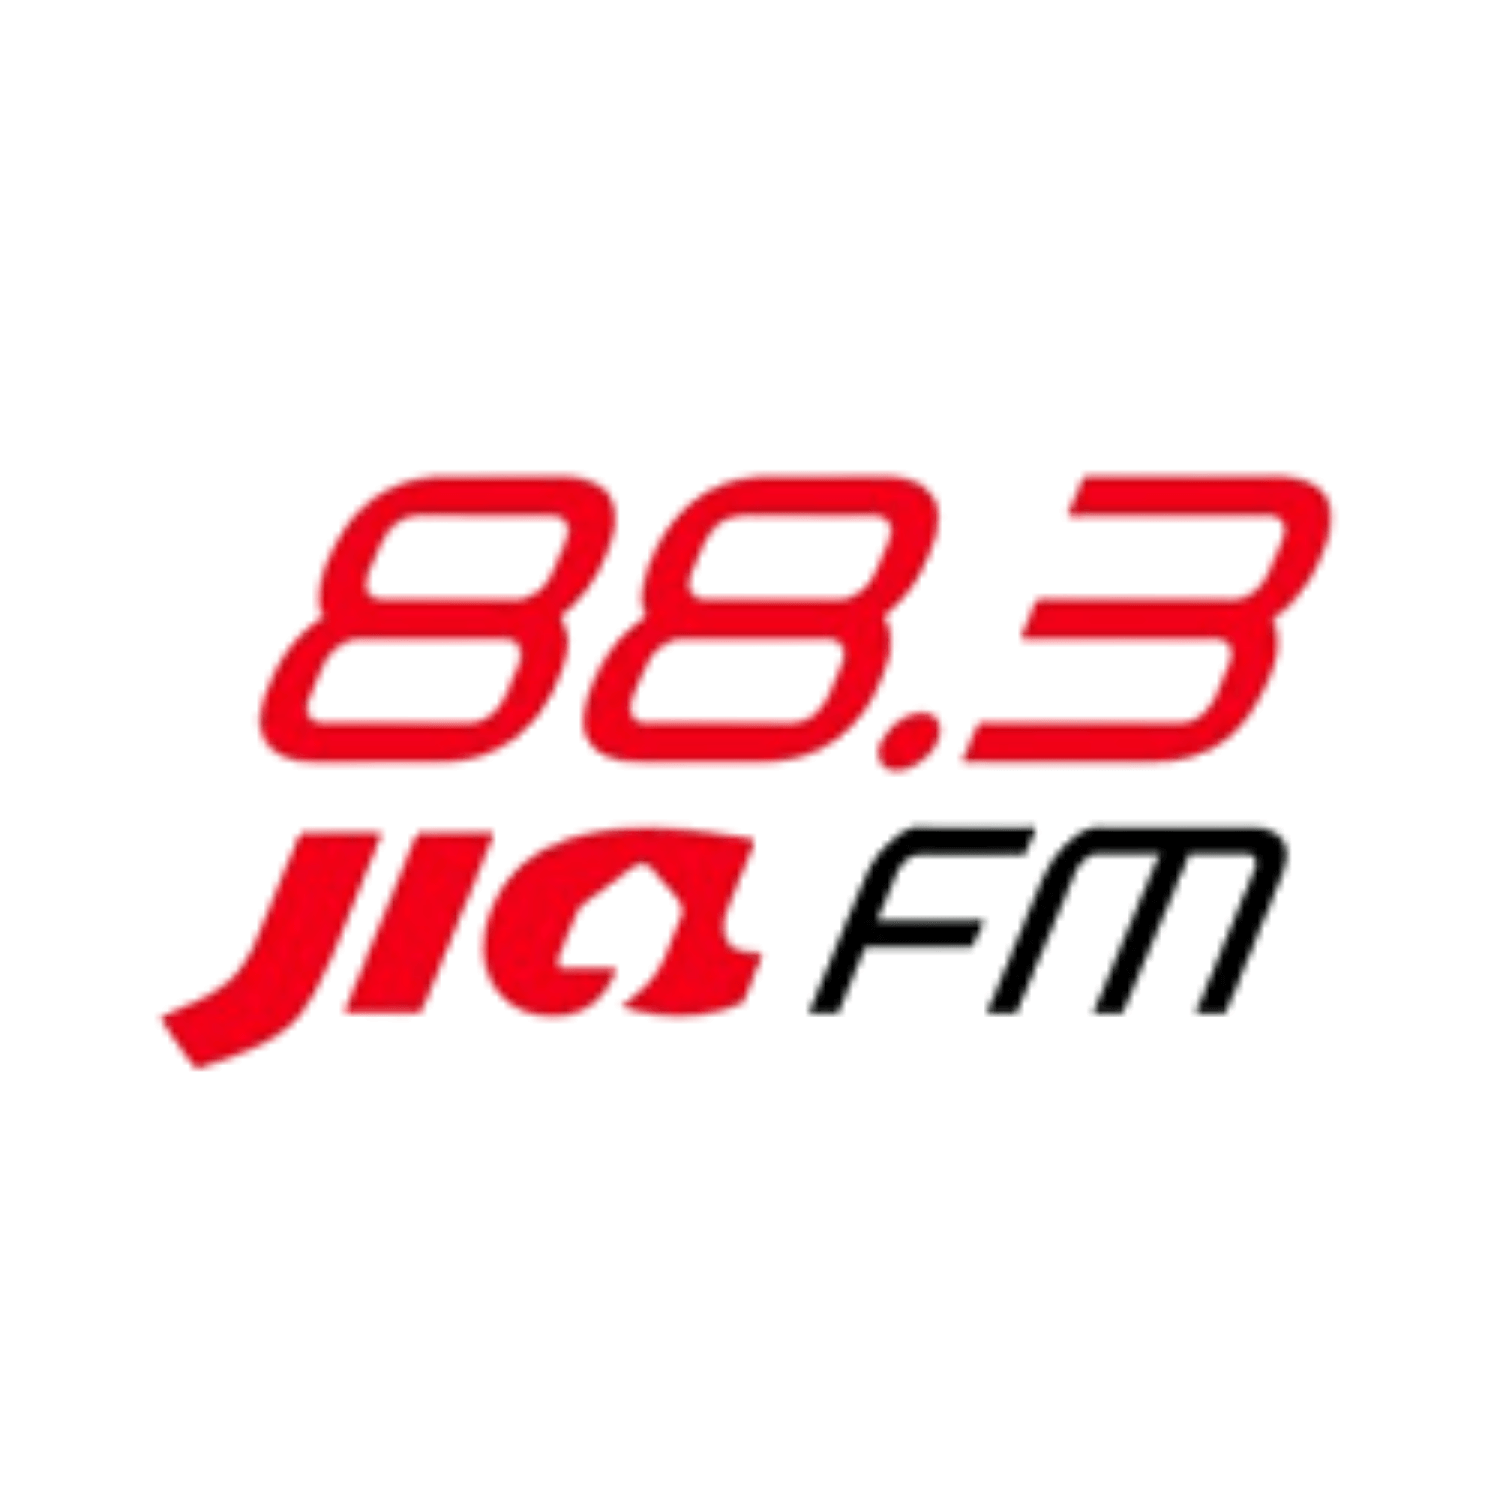 88.3 Jia FM featuring Catch Cheating Spouse